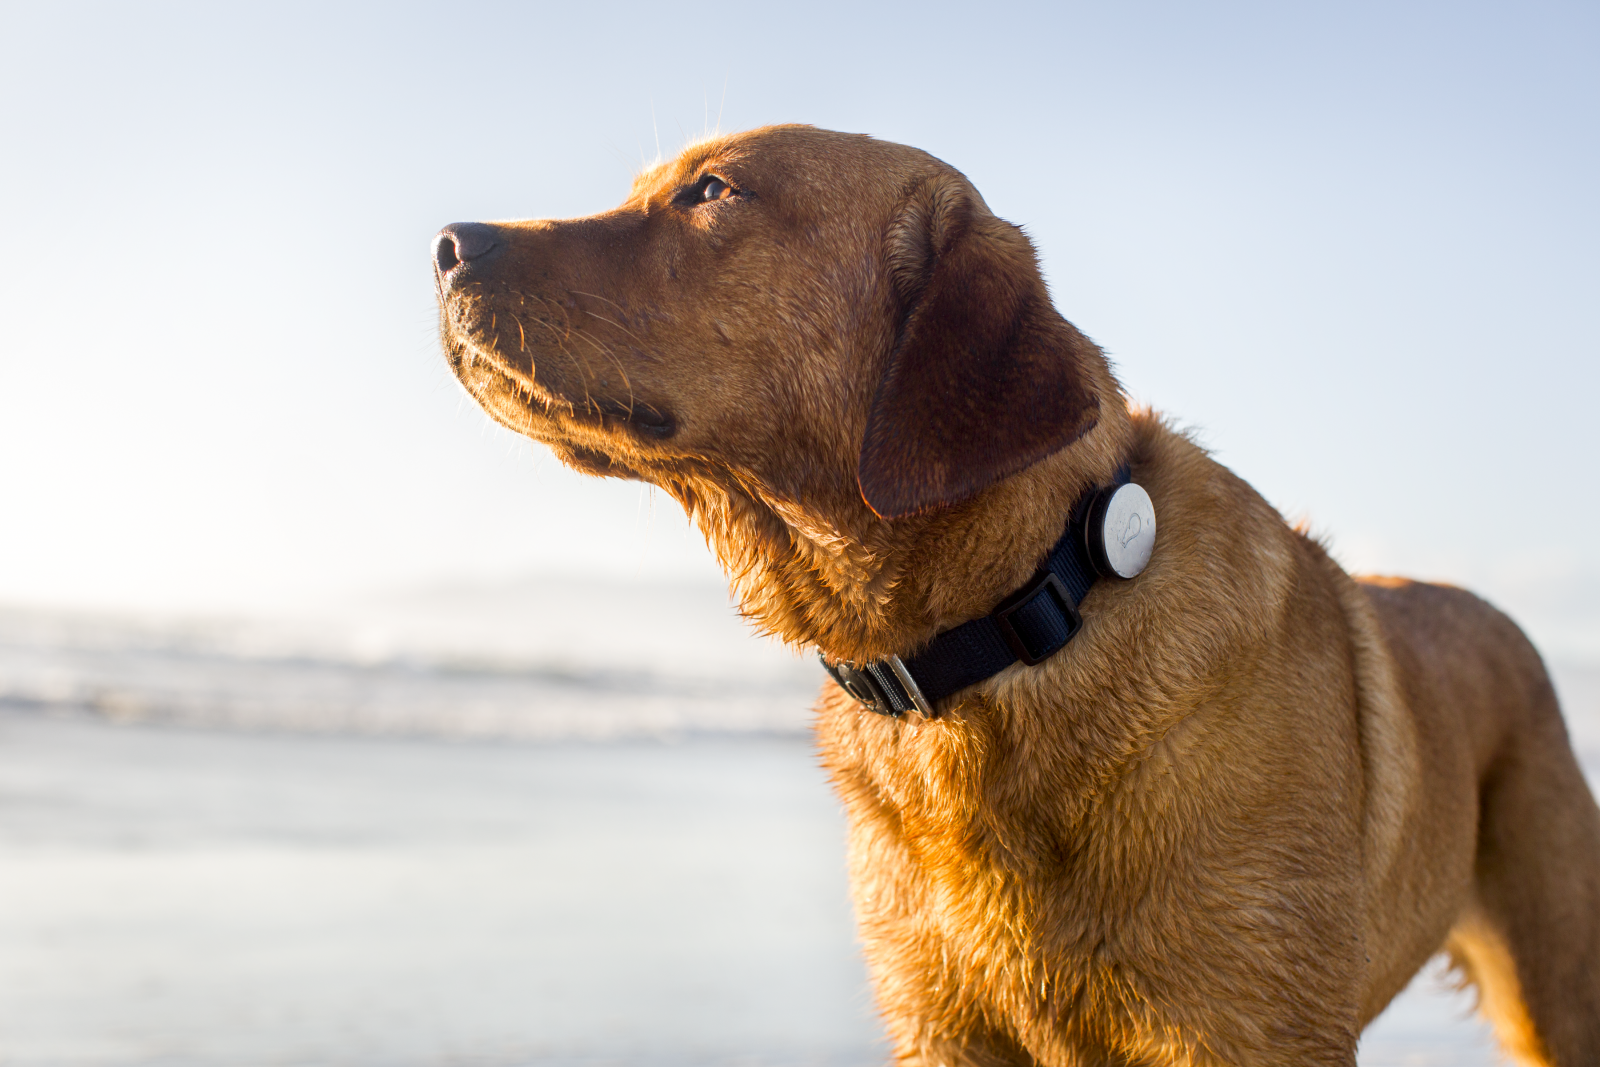 Dog fitness tracker Whistle raises $15m and buys out rival